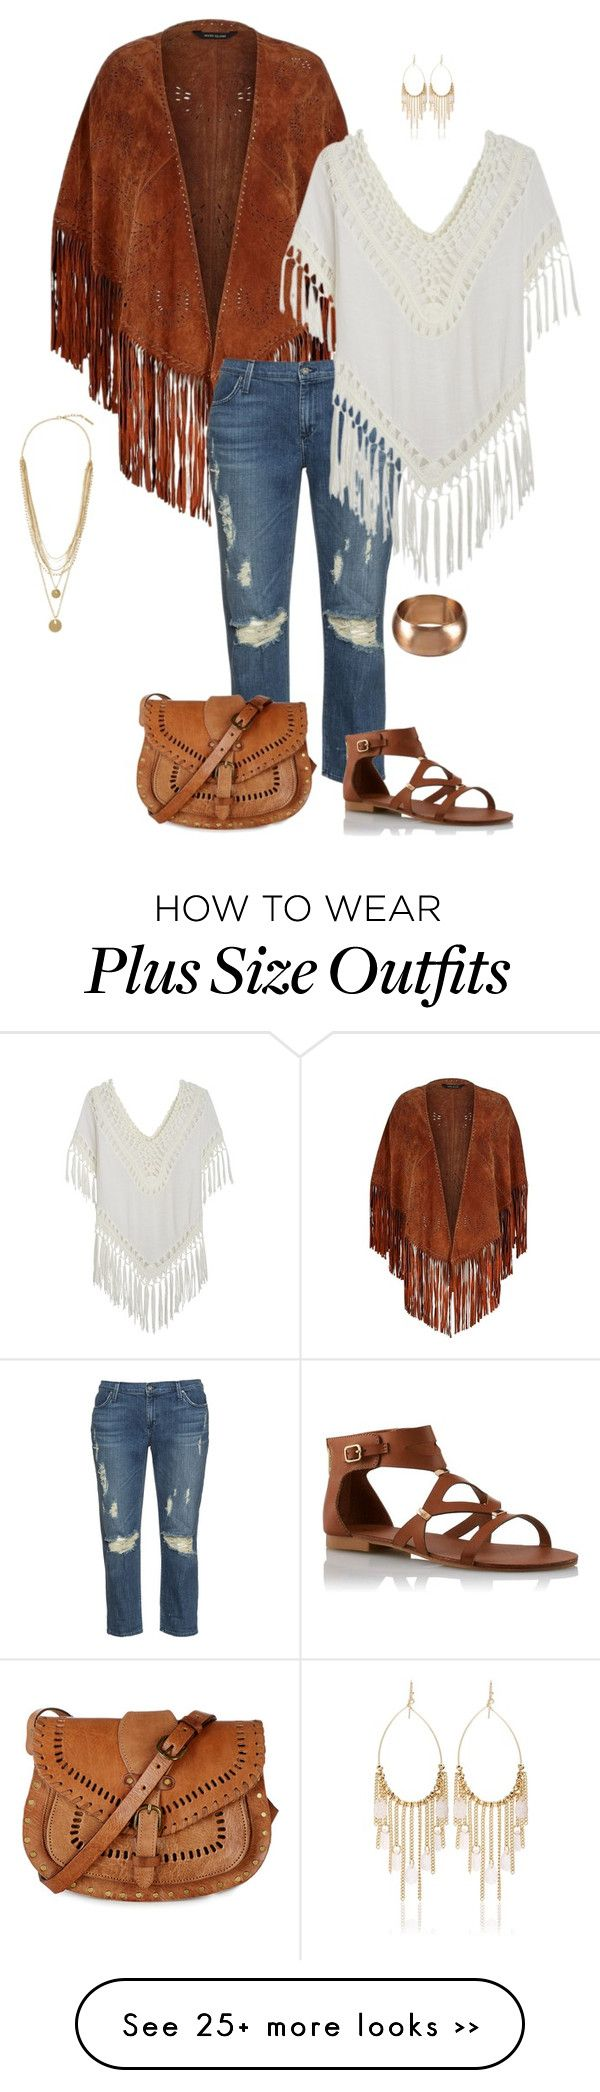 """On the fringe- plus size"" by gchamama on Polyvore featuring River Island, James Jeans, Warehouse, White House Black Market and Vince Camuto"